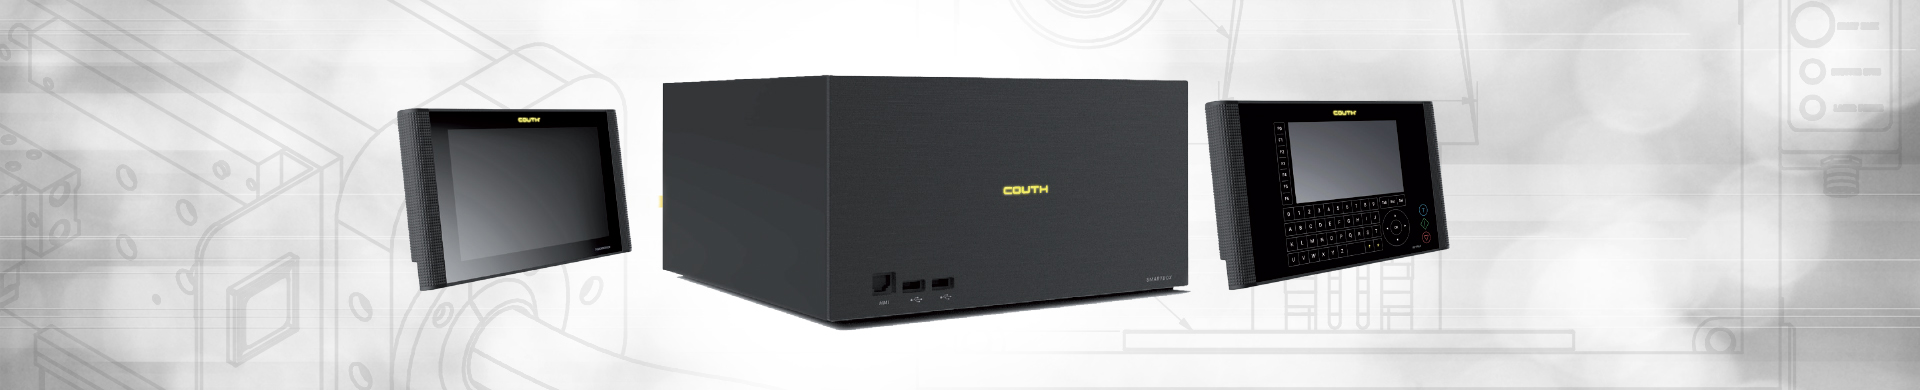 COUTHsmartbox Controller